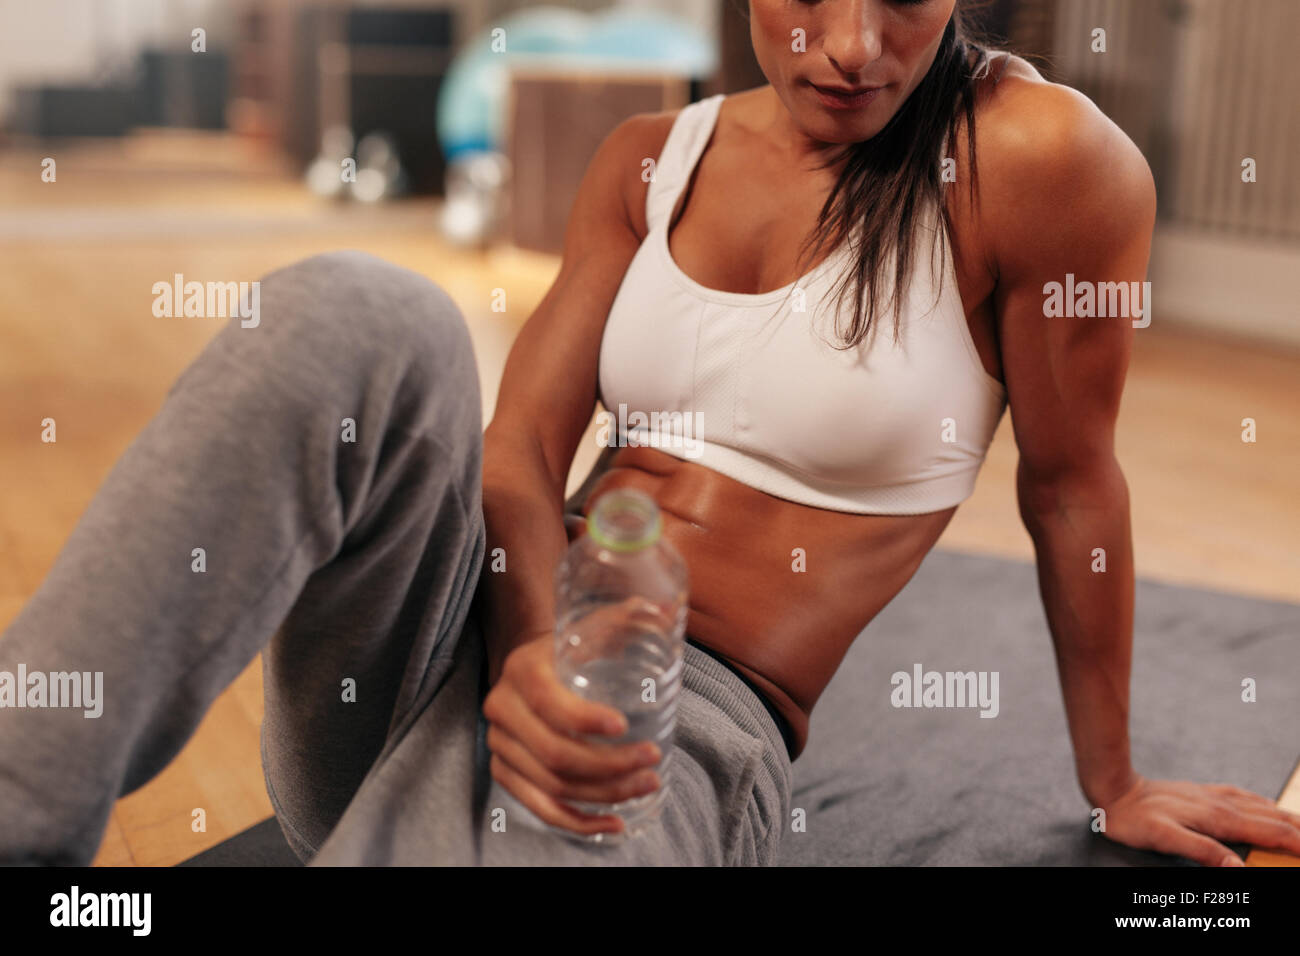 Cropped shot of fitness woman holding water bottle at gym. Focus on water bottle. Female sitting on exercise mat. - Stock Image